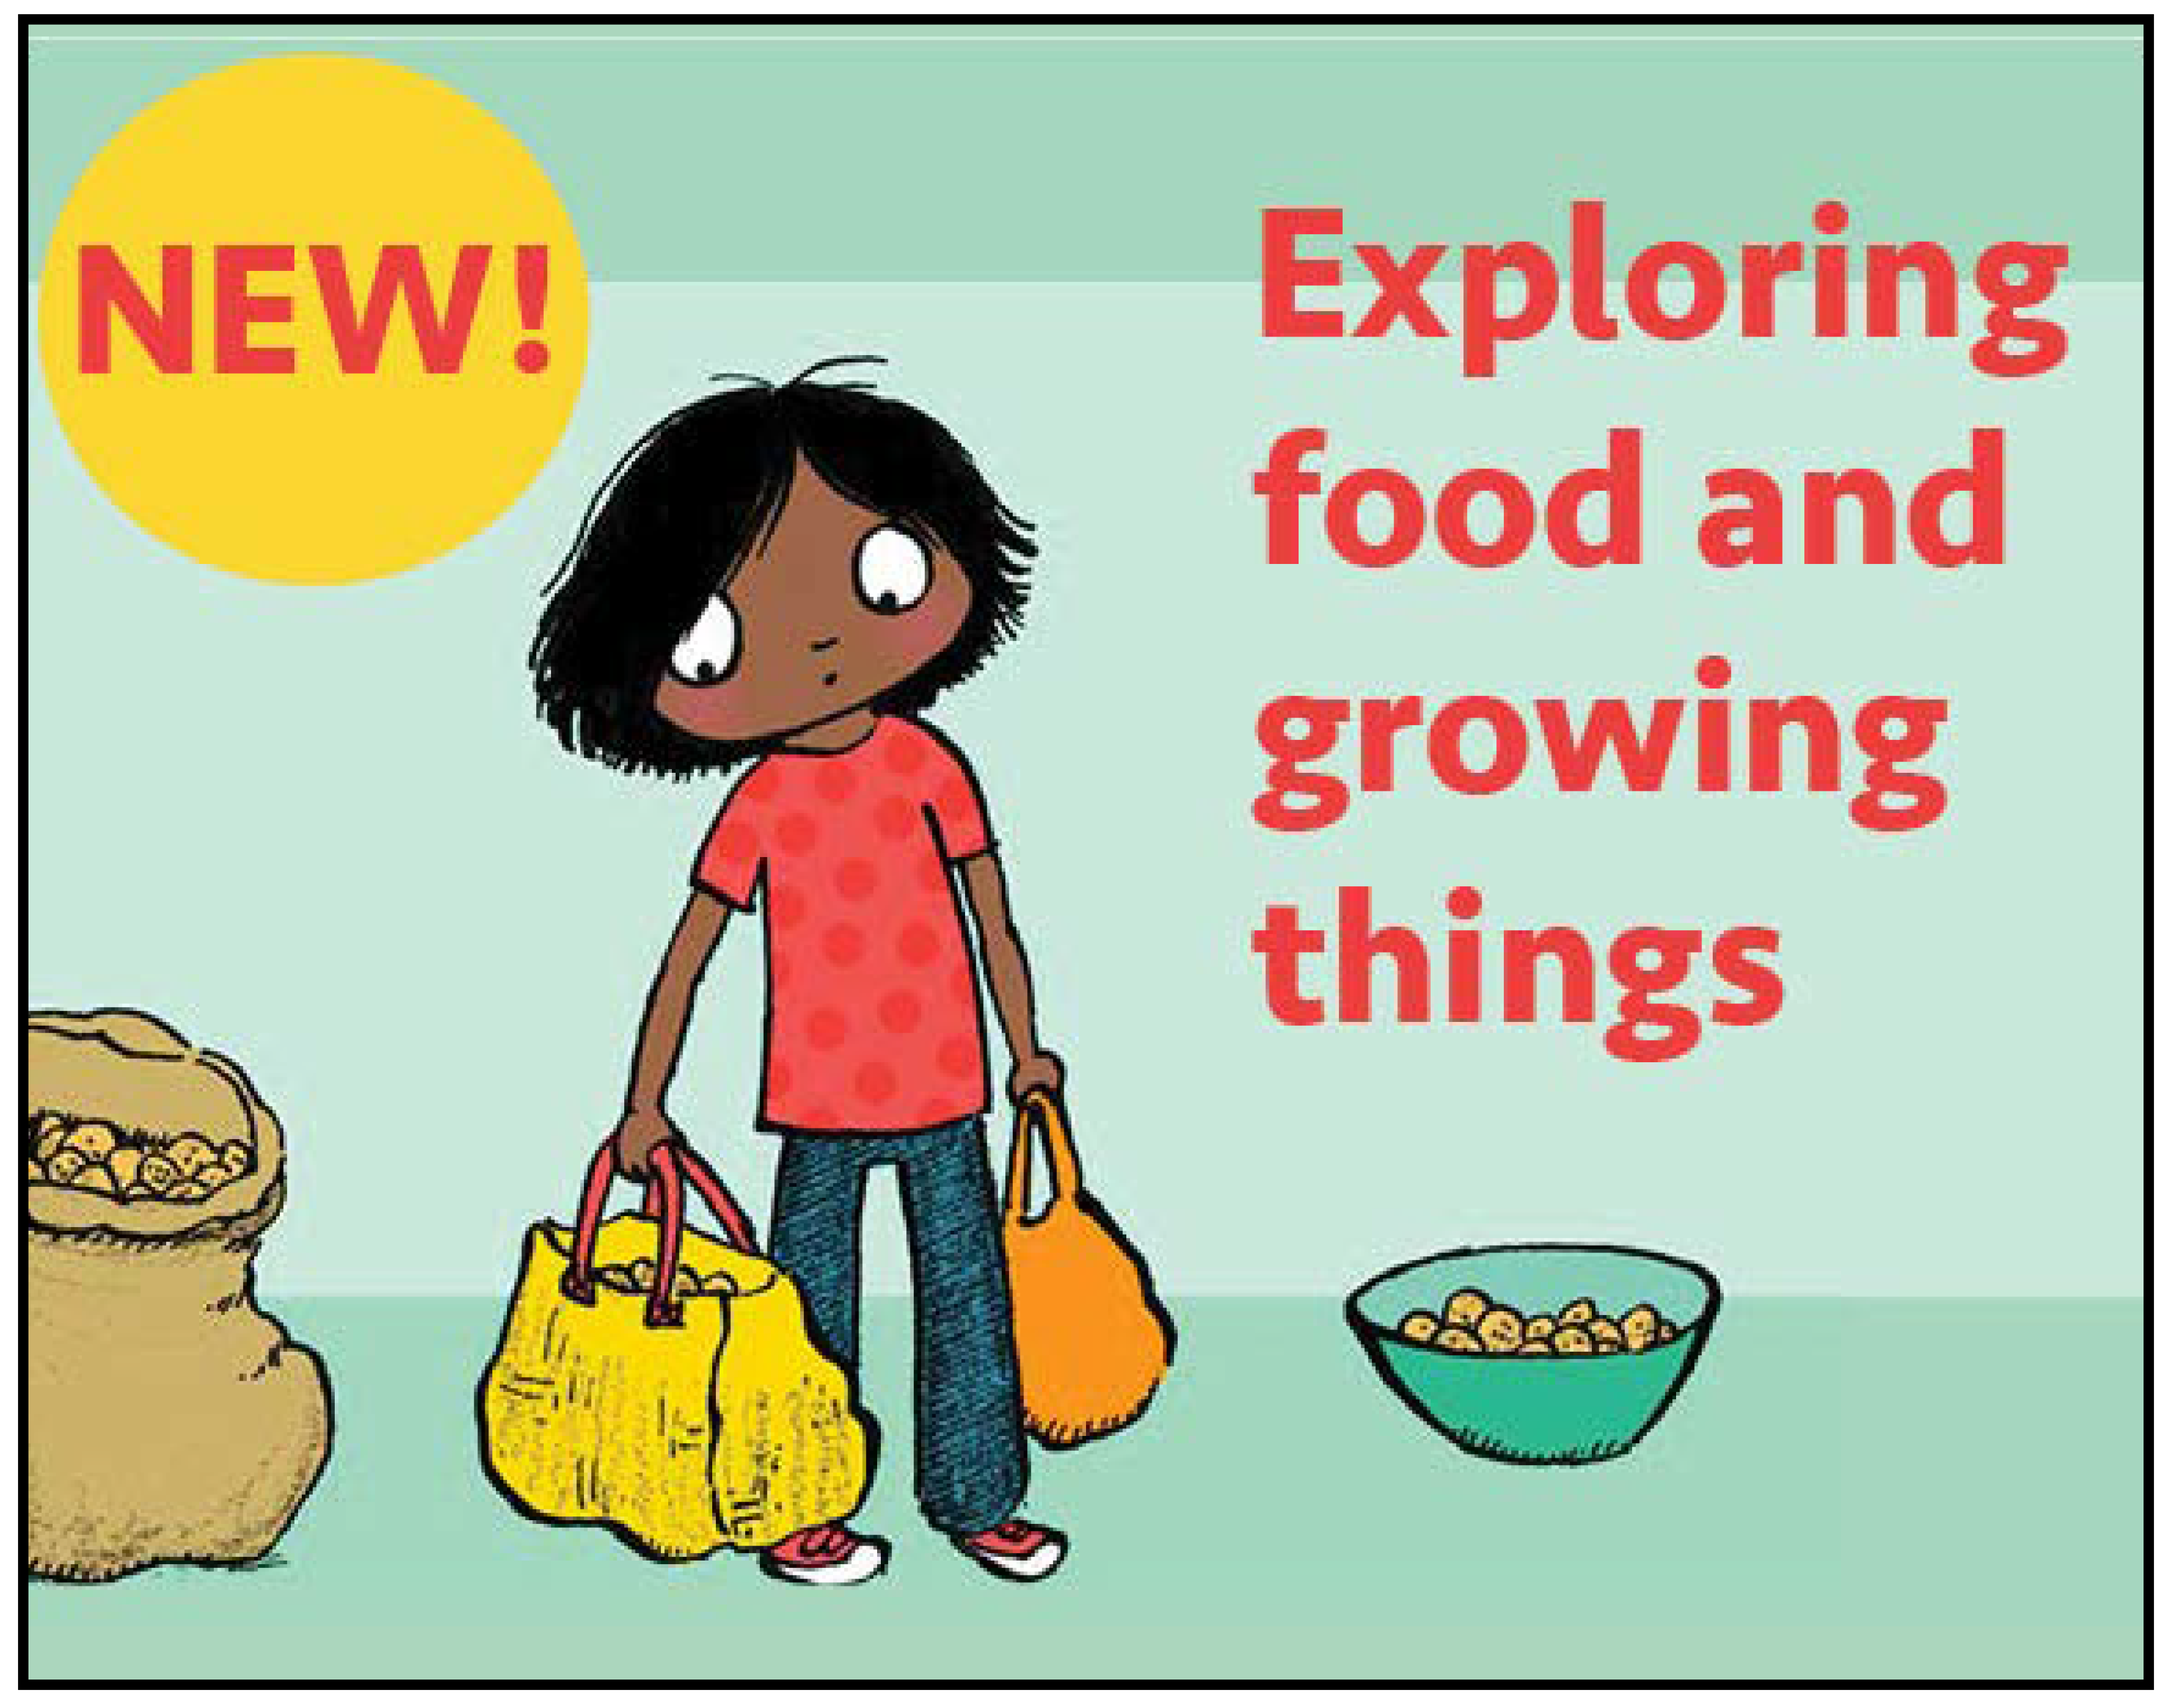 Explore food and growing things